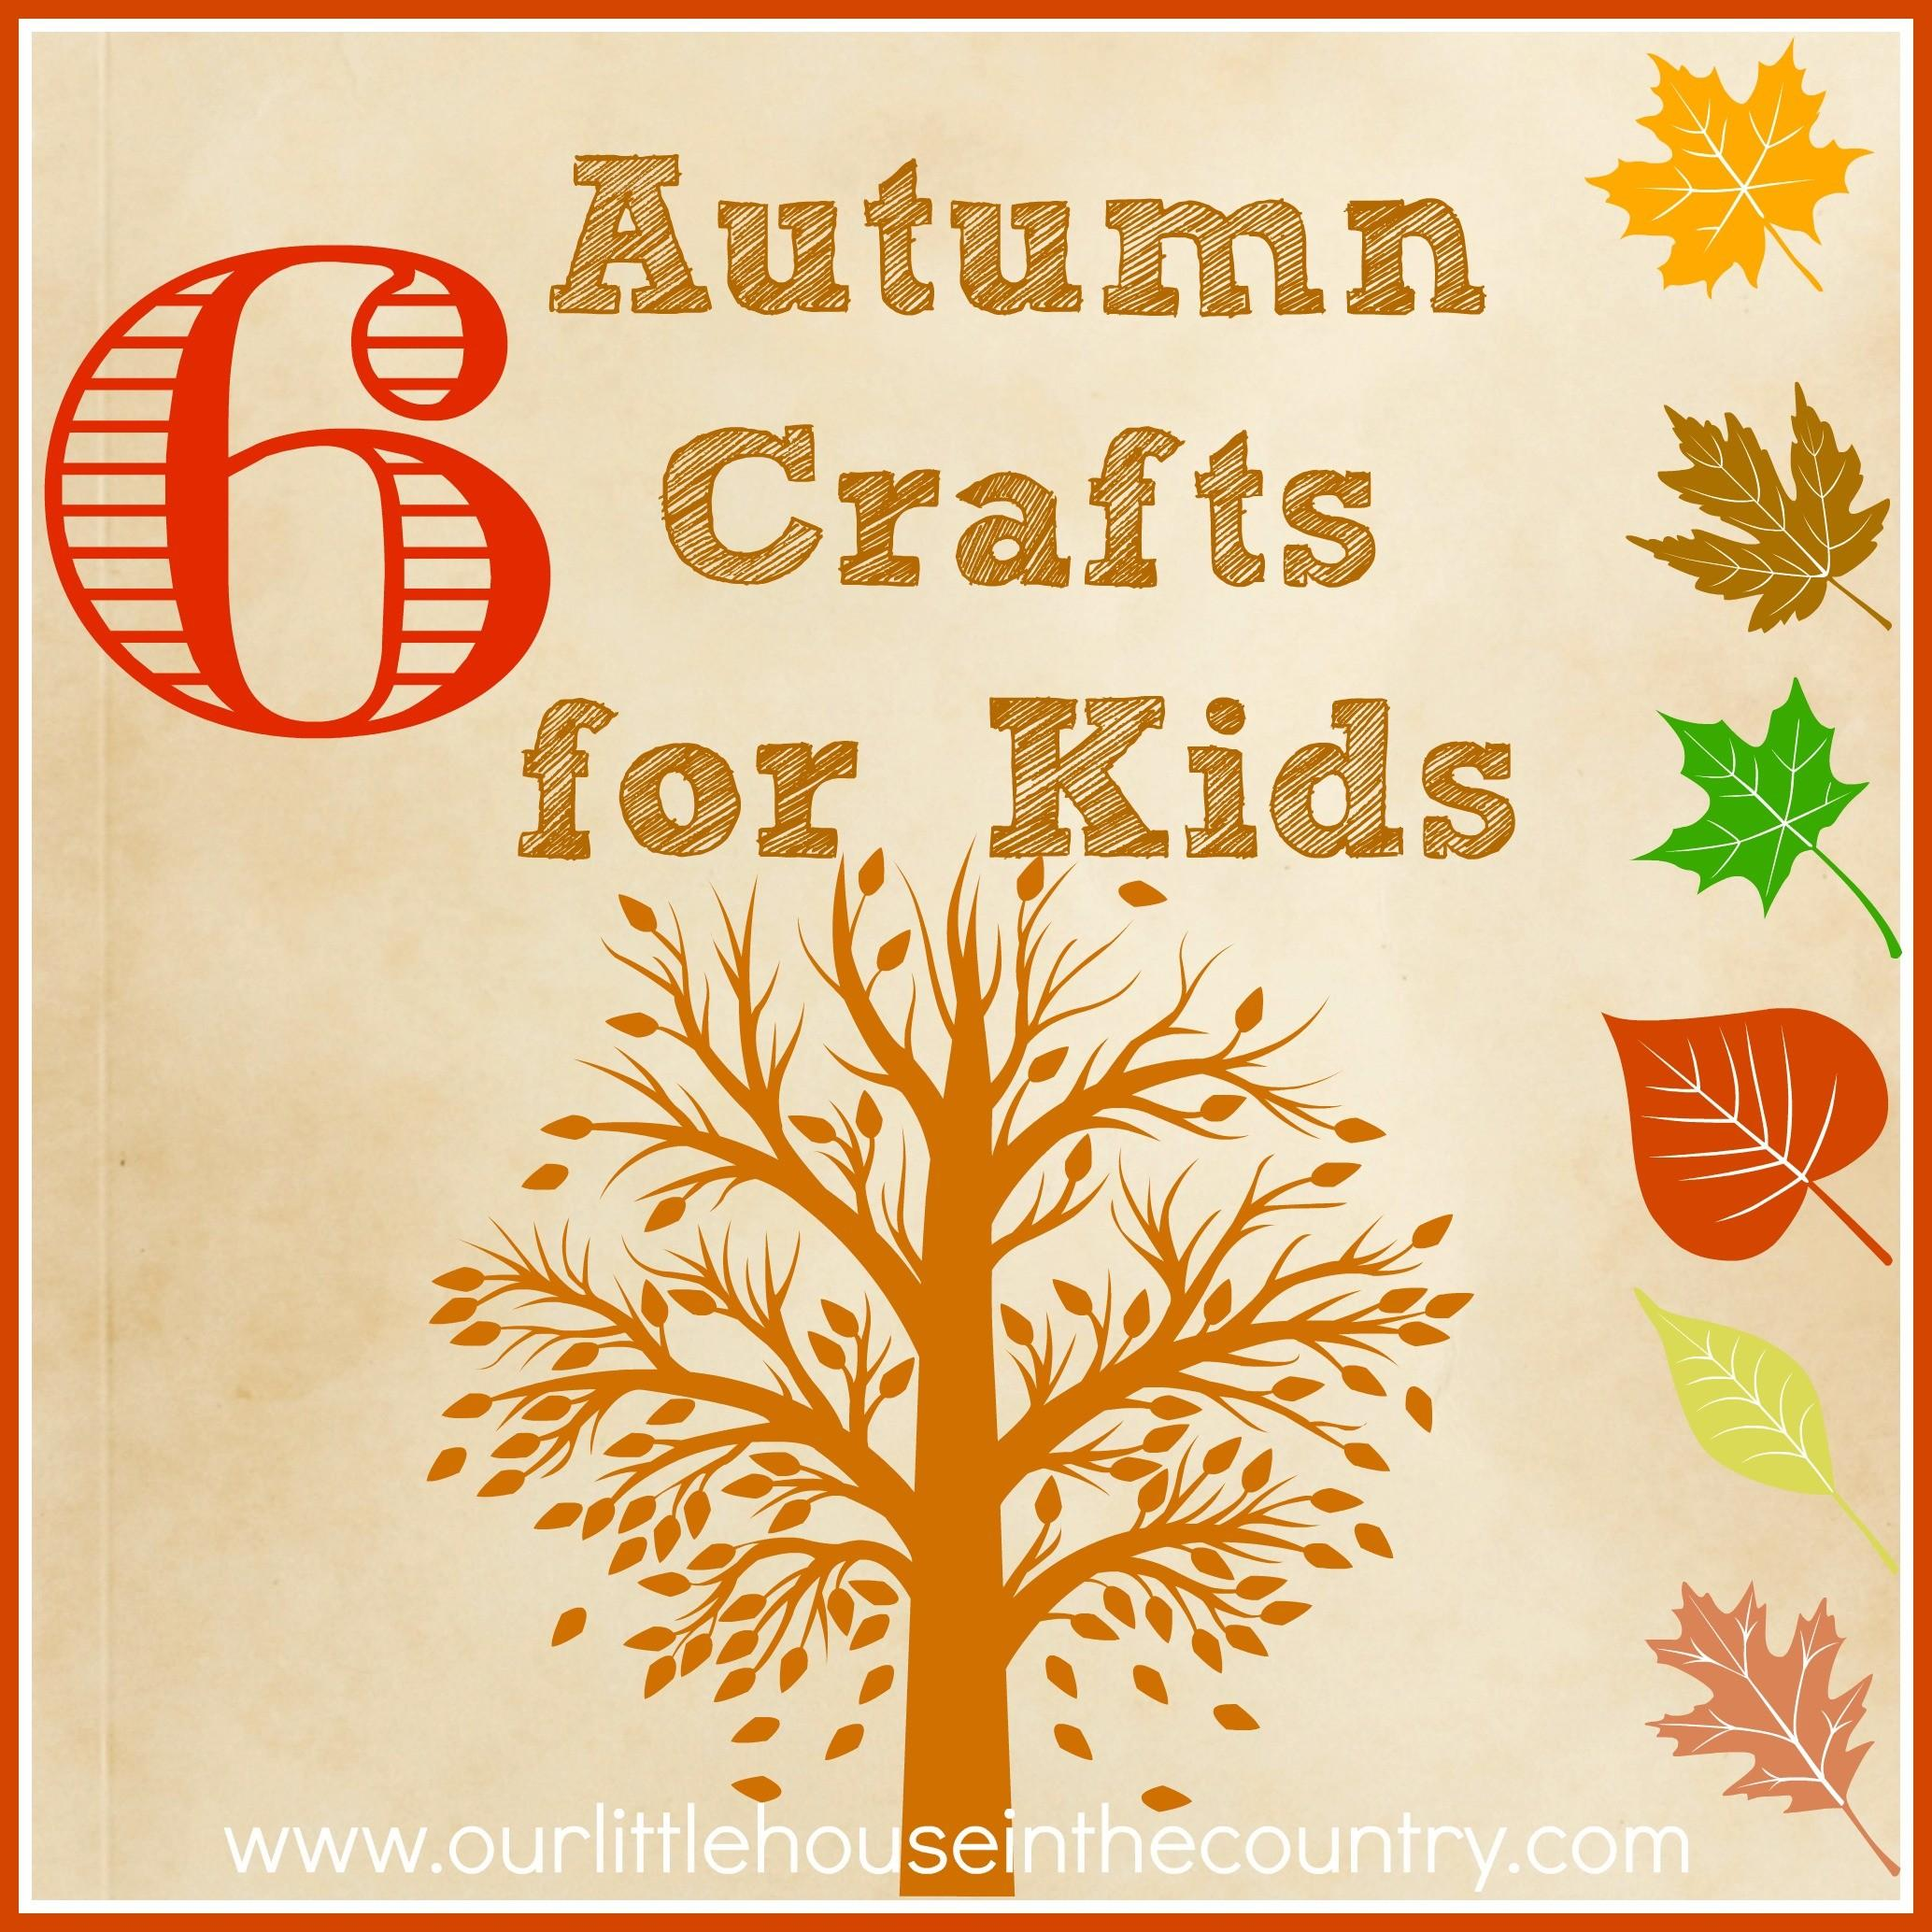 Build Craft Projects Toddlers Preschoolers Diy Pdf